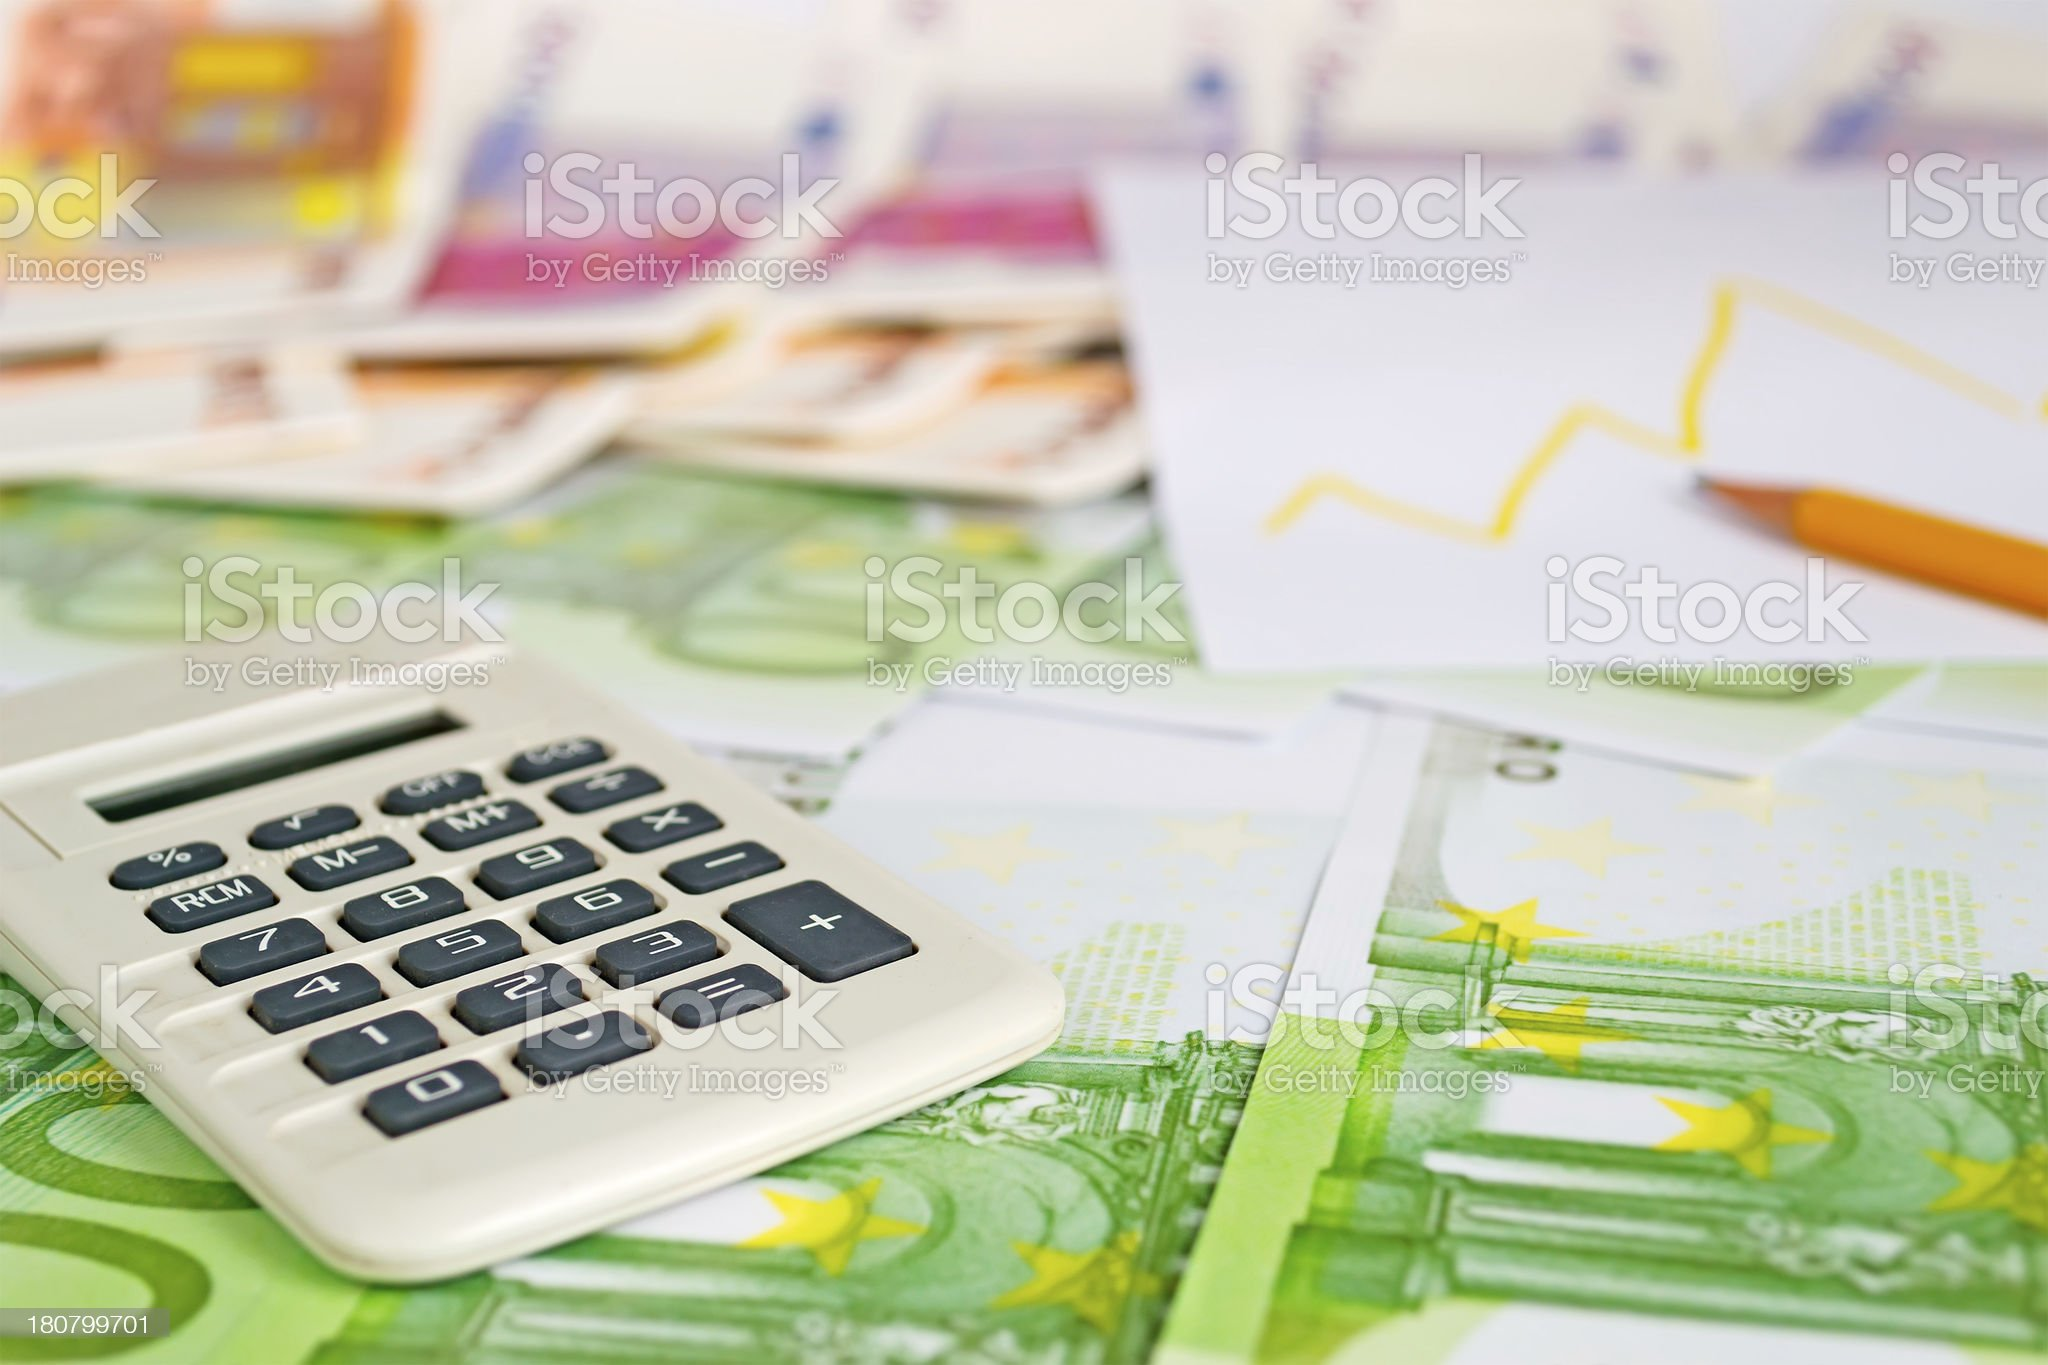 pencil and calculator royalty-free stock photo